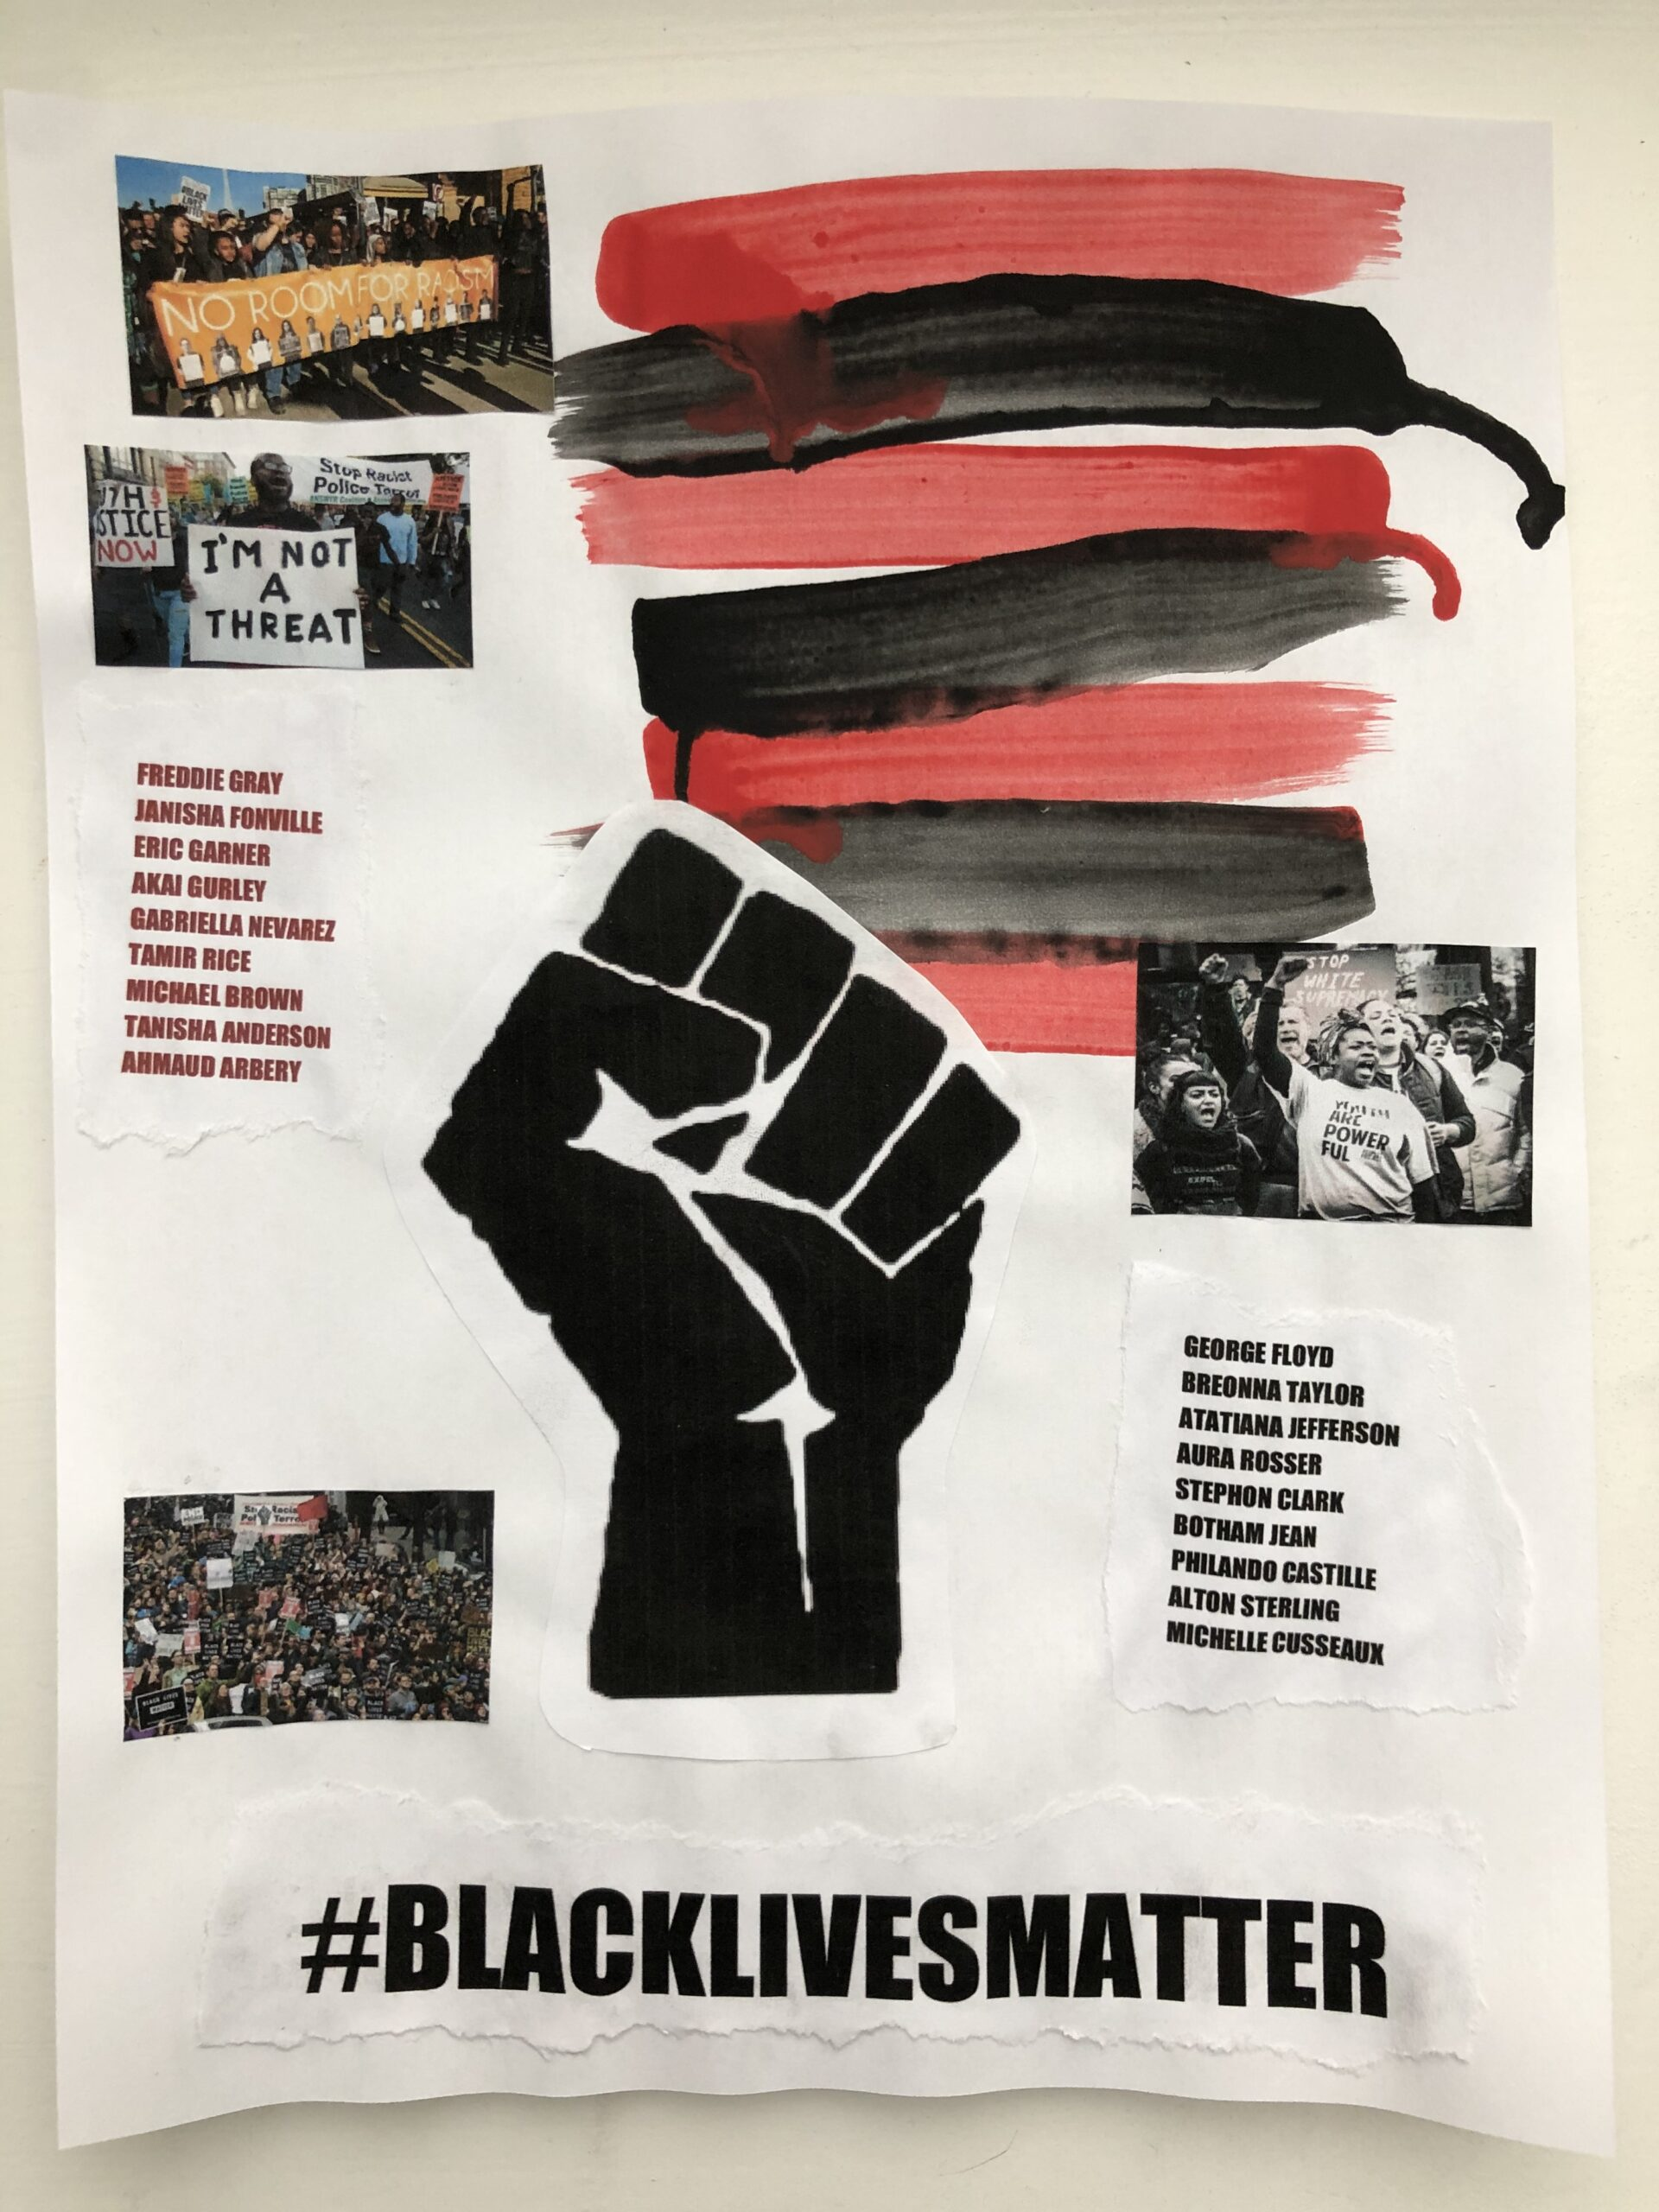 """The Red and Black American Flag represents and commemorates the innocent black lives that have been lost over the years and the raised fist is a symbol for unity and solidarity to represent how citizens are uniting to finally overcome racial inequality. The purpose of making this was to spread awareness through the power of art because """"there comes a time when silence is betrayal (Martin Luther King)"""" and this is that time. We can no longer stay quiet and it's time that everyone fights to end racism. I included the names of only a fraction of innocent black citizens that were killed by police in recent years and I also included pictures of recent protests that have been taking place to display how many people are finally waking up and seeing the reality of black lives."""